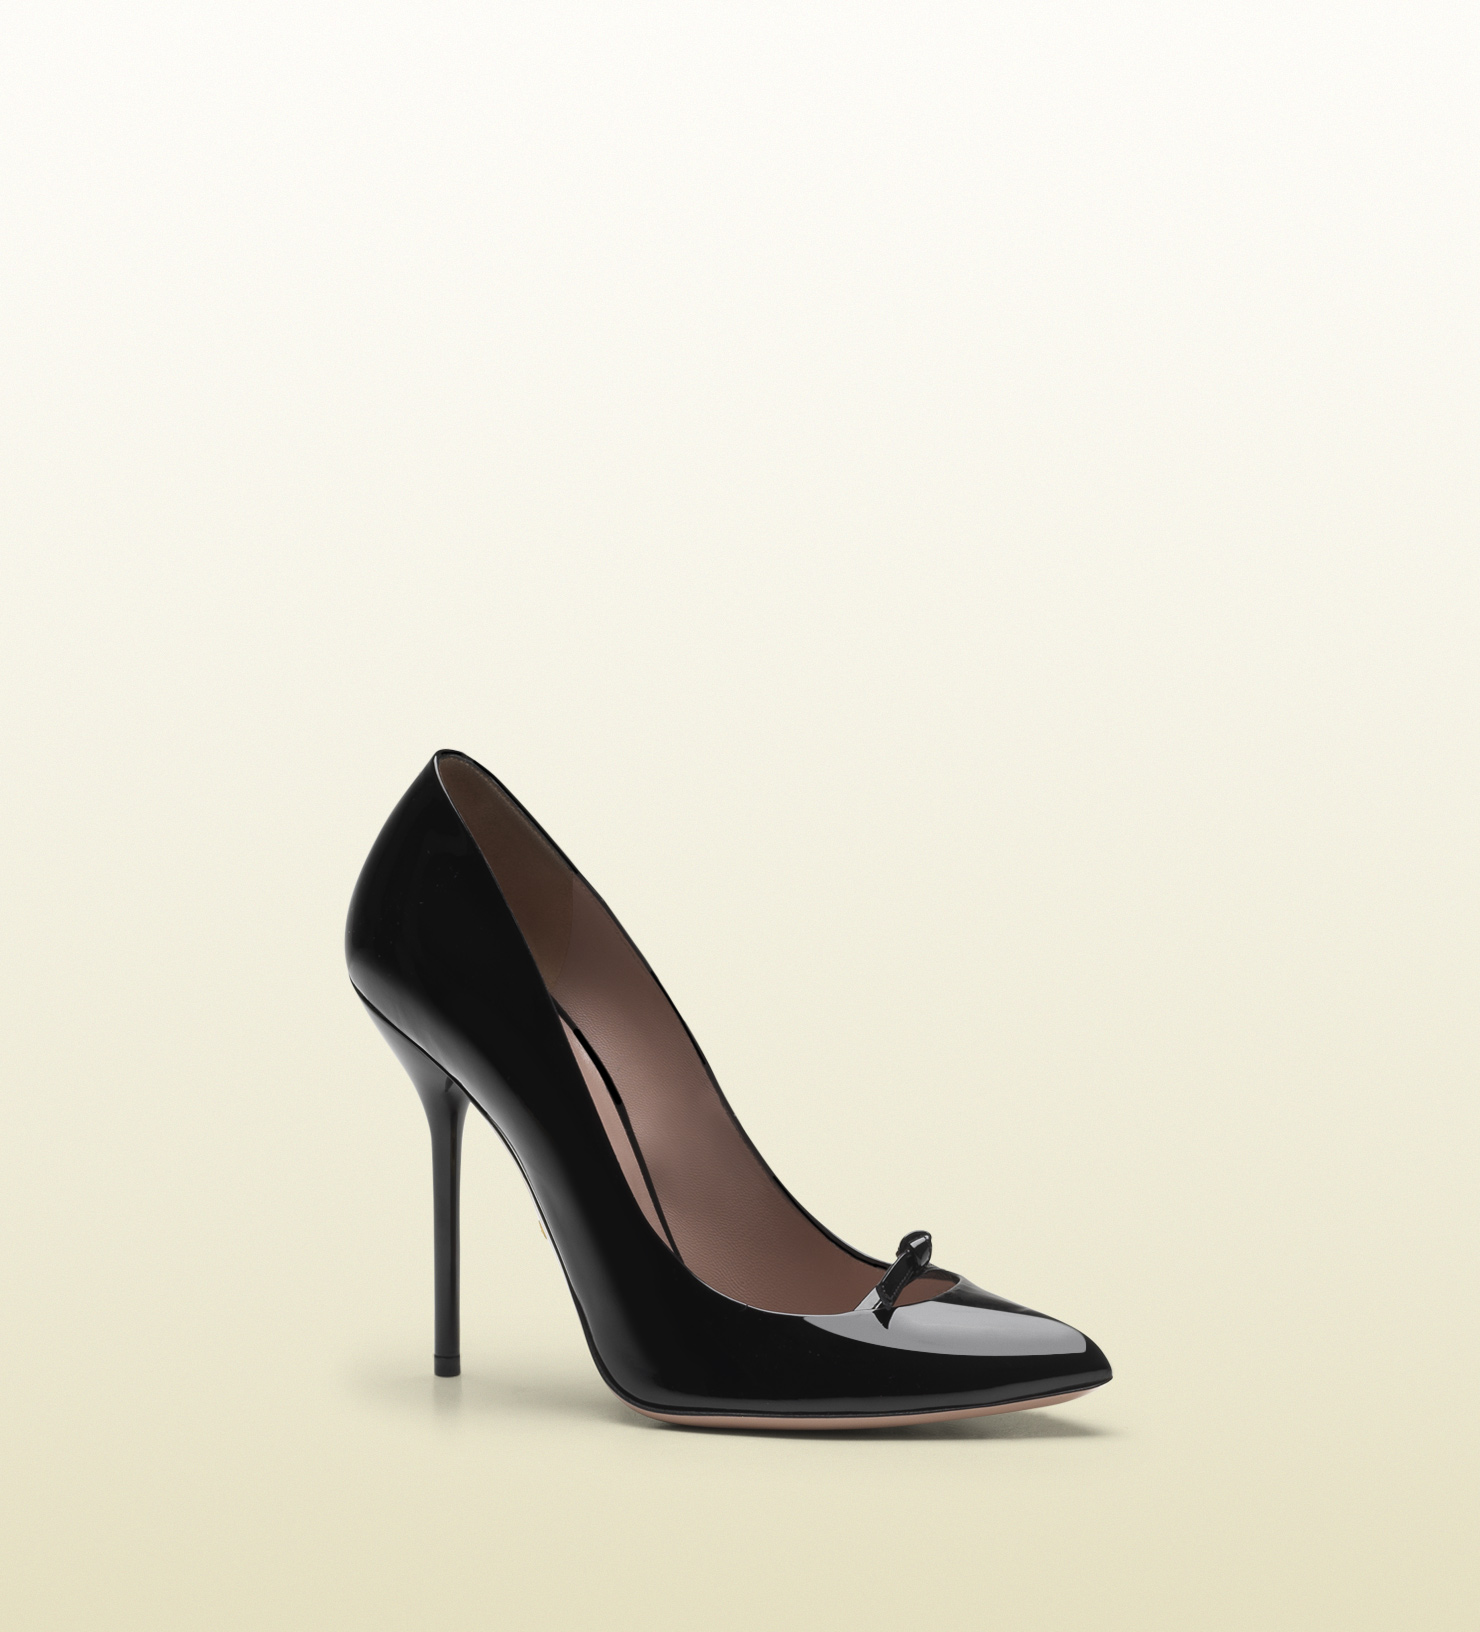 b3d235831 Gucci Patent Leather High Heel Pump in Black - Lyst